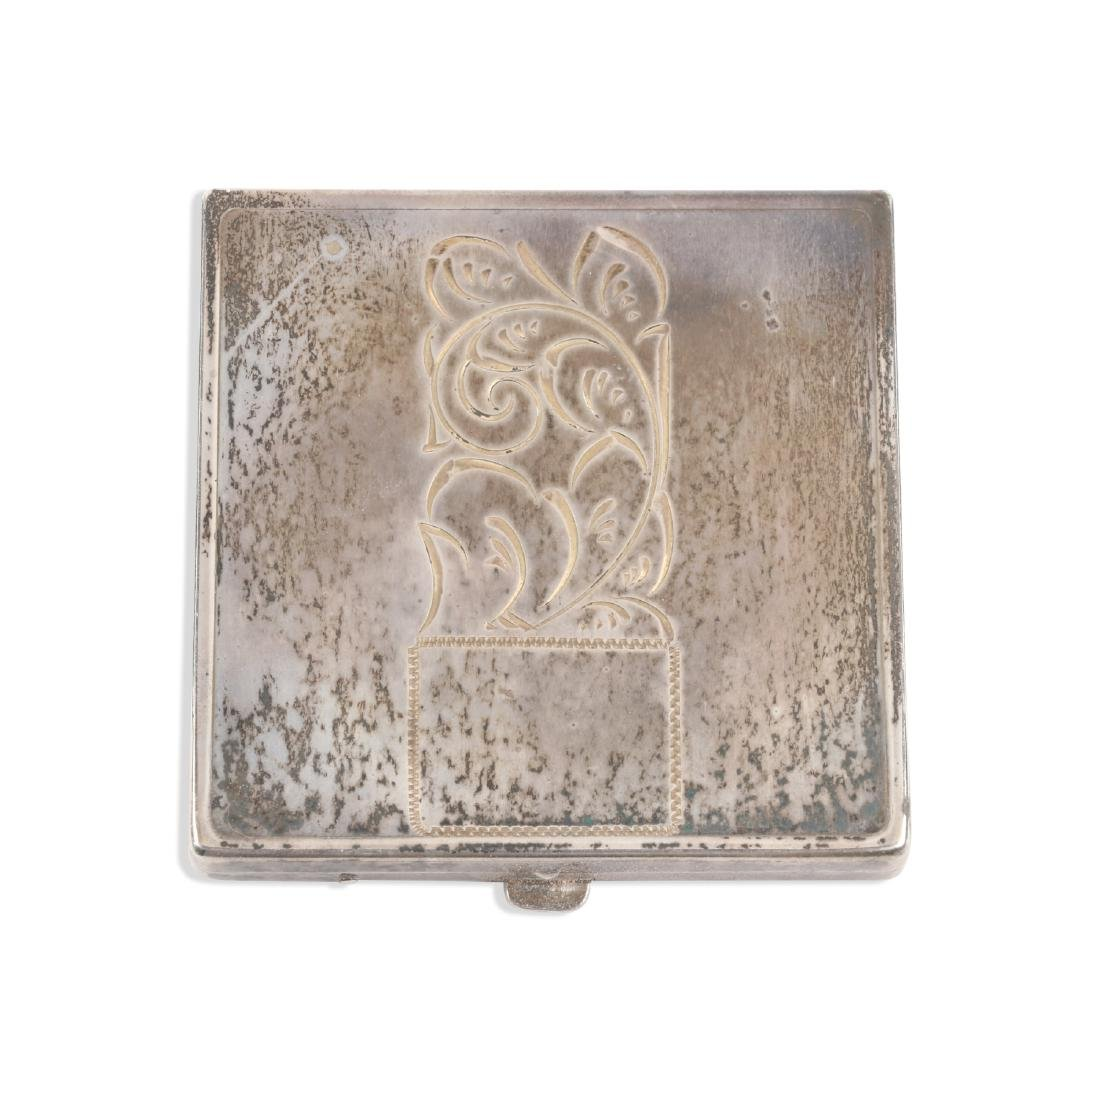 A Mid-Century Sterling Silver Compact